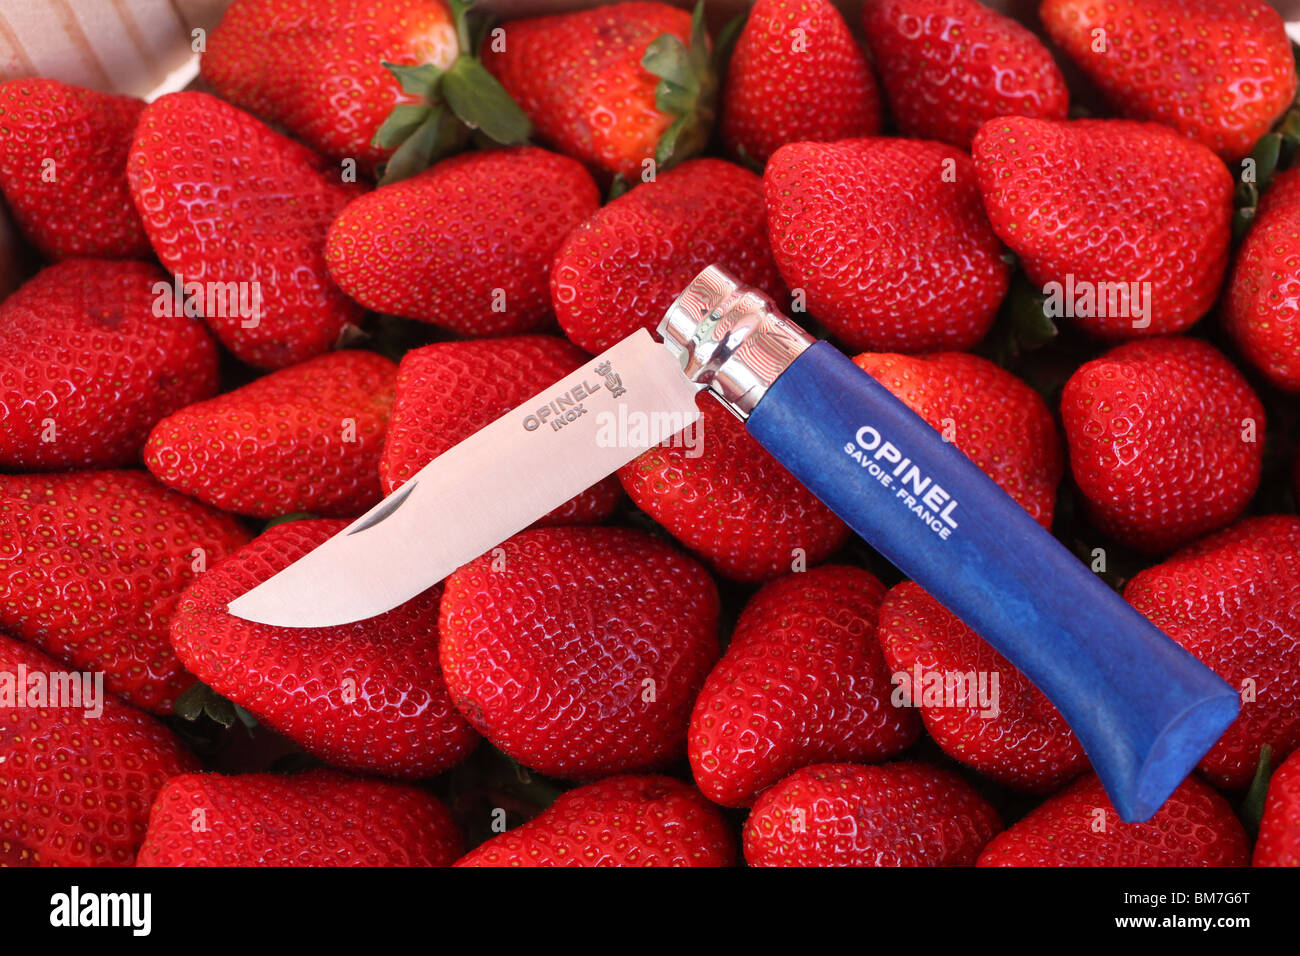 Opinel knife on strawberries - Stock Image